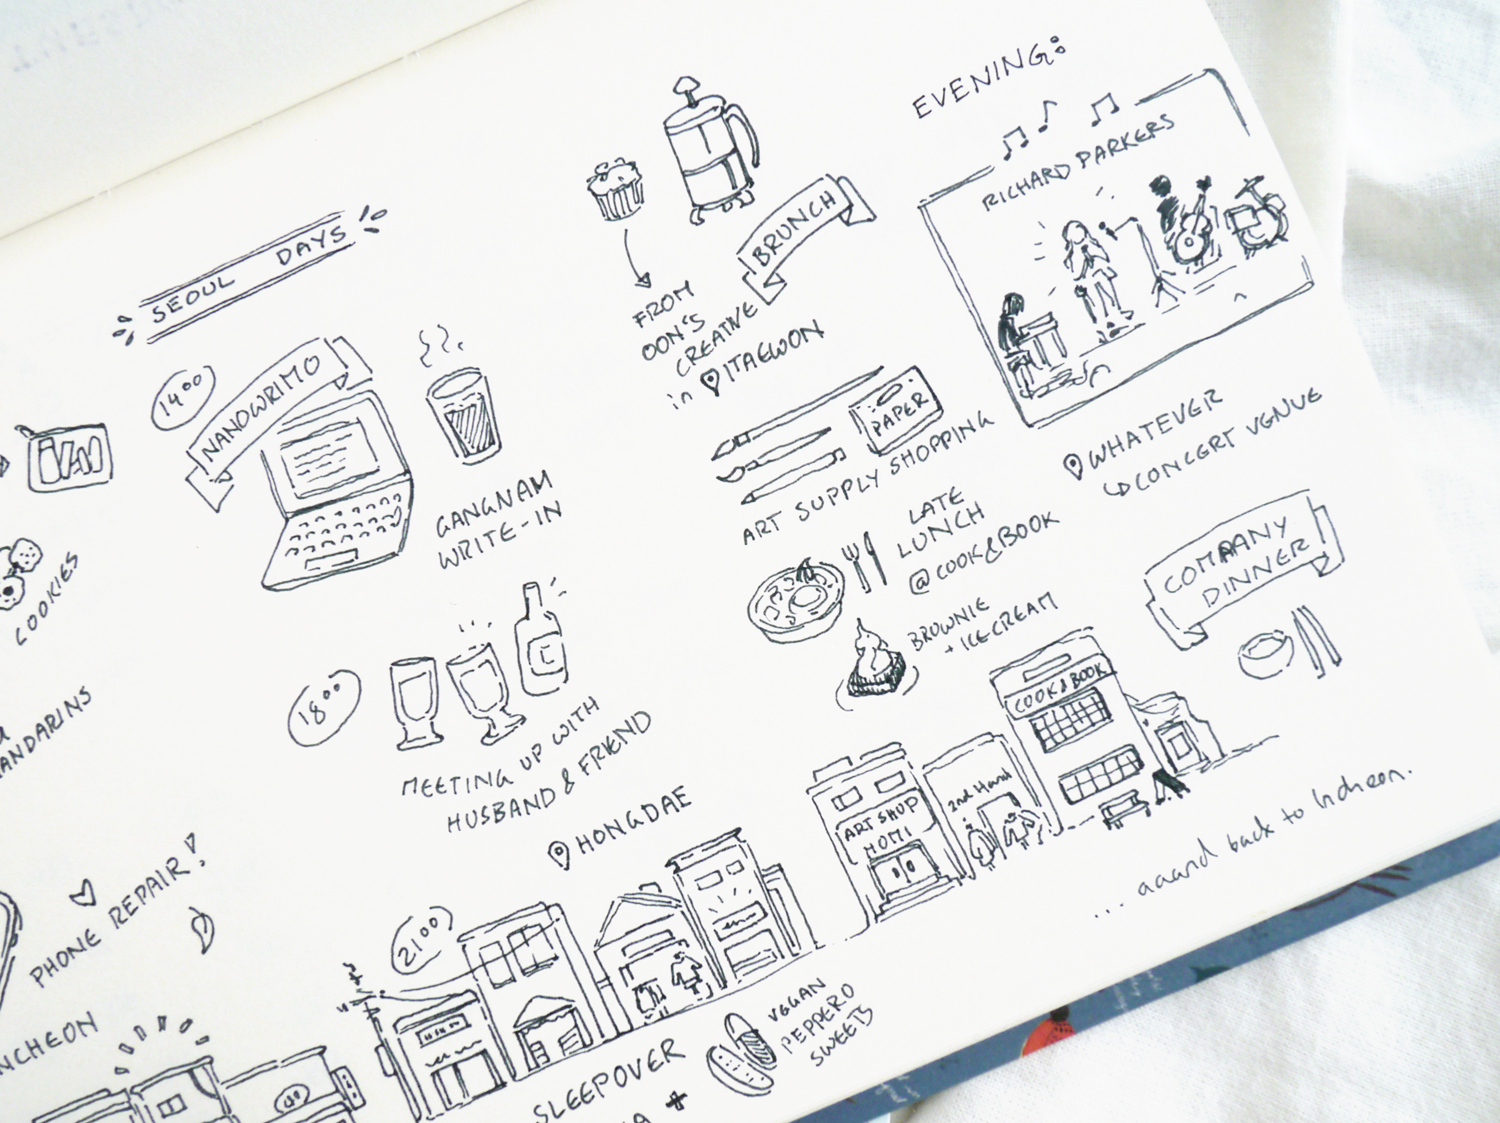 Things to do in Hongdae, Seoul: A creative travel diary & bullet journal doodles. I love how this page in my bullet journal turned out - especially the tiny buildings at the bottom, representing three days of location changes, restaurants, shops, sleepovers...  How to spend a day in the area around the (artsy) Hongik University in Seoul - the whole area is famous for its nightlife and shopping opportunities, but there are hidden places and side streets to discover. Follow me around Hongdae from morning till night, from art shops to restaurants, creative events to concerts, and I hope you get some ideas on how to spend a laid-back day in Seoul. With travel sketches and a creative bullet journal vacation layout idea.